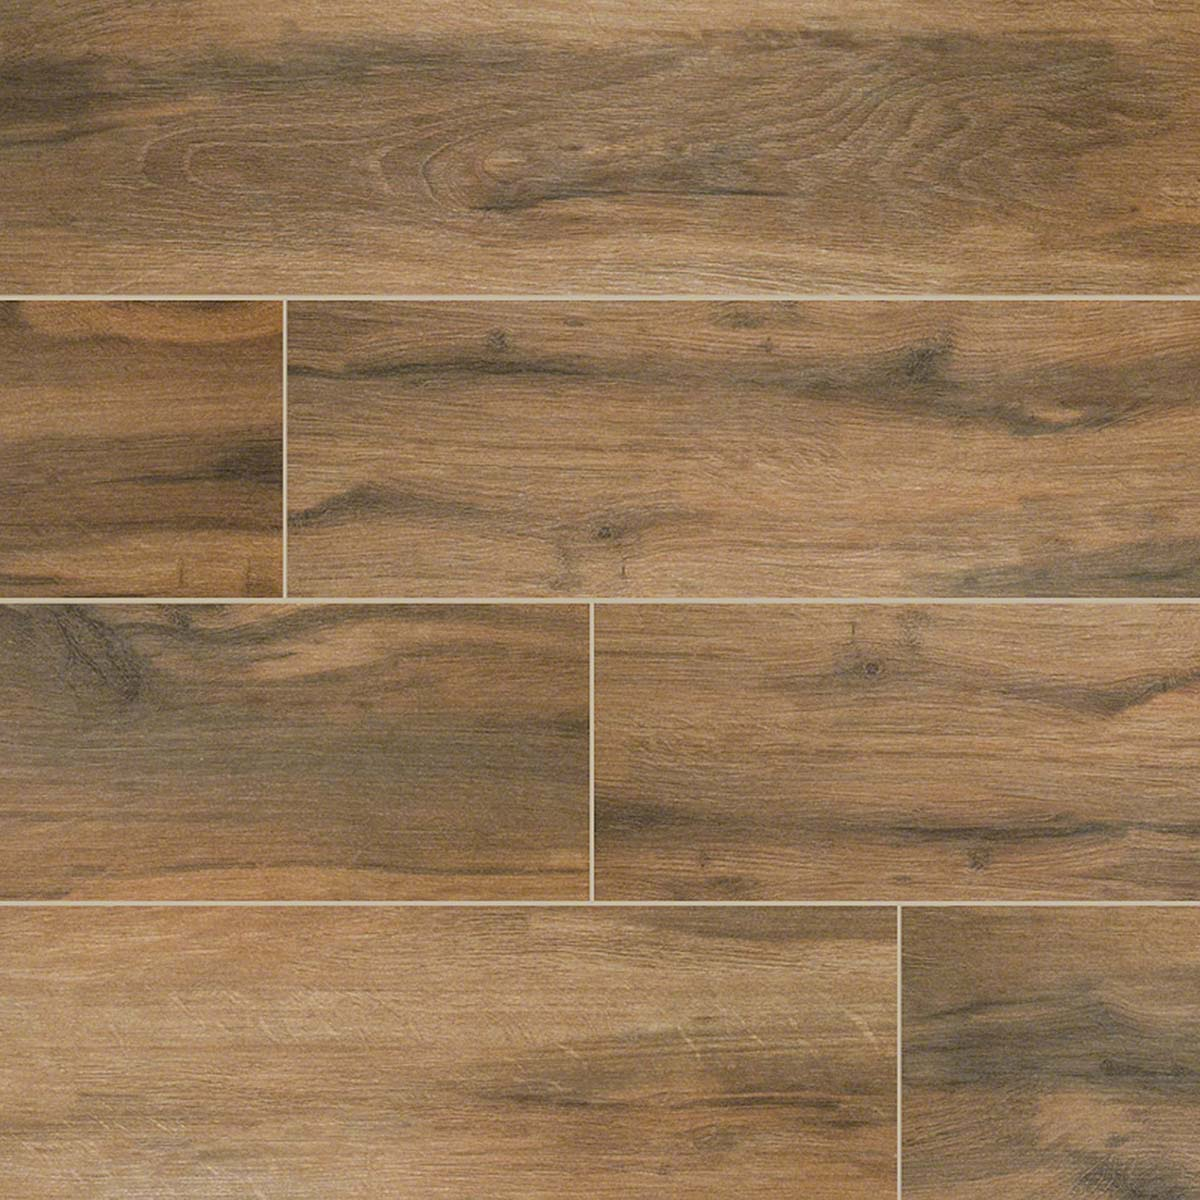 Porcelain Wood Tile Free Shaw Porcelain Wood Look Tile